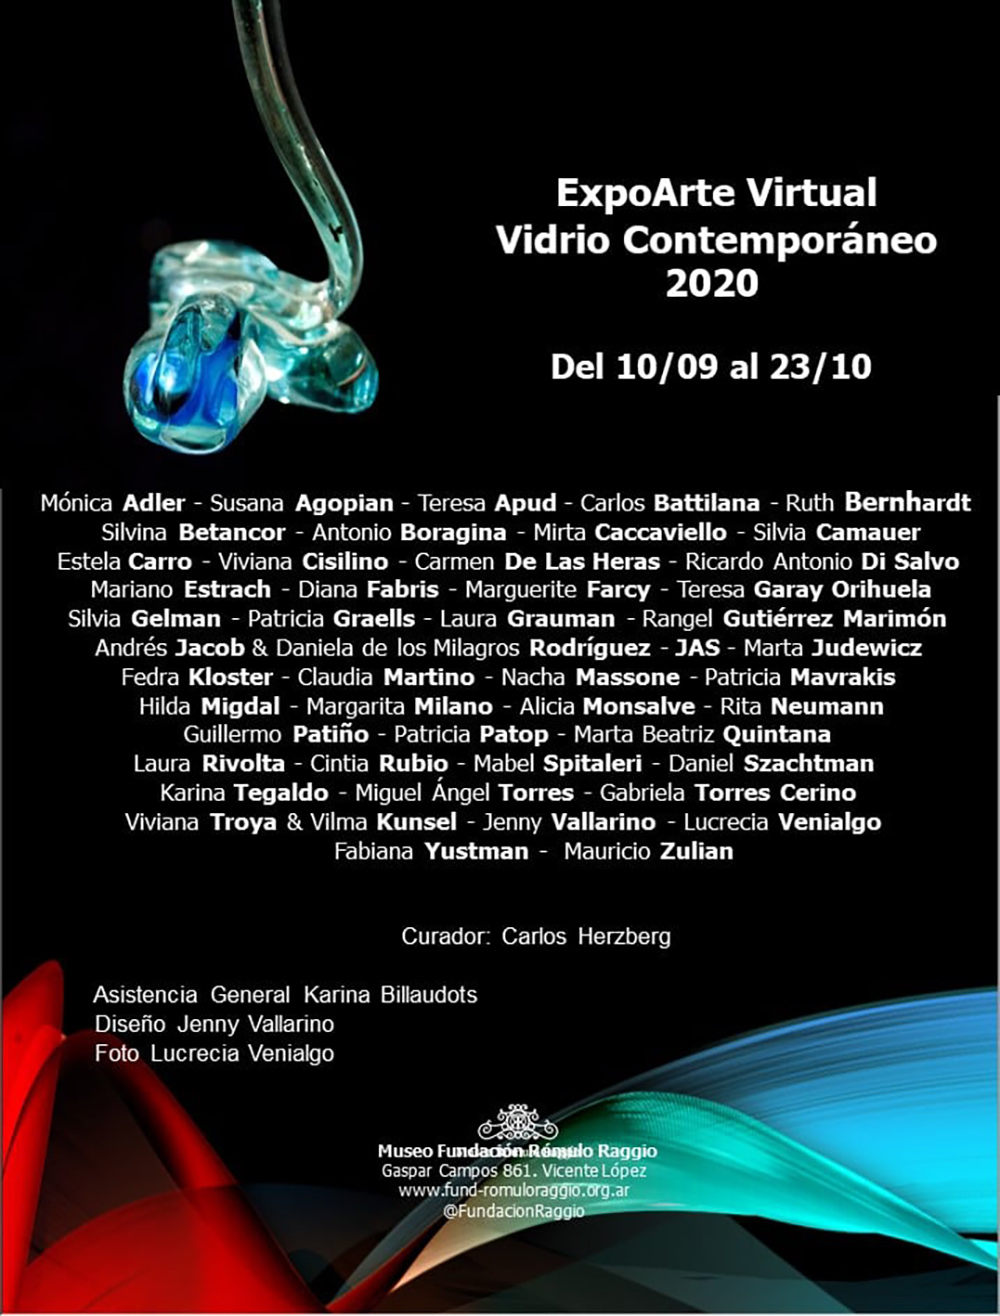 ExpoArte Virtual Vidrio Contemporáneo 2020